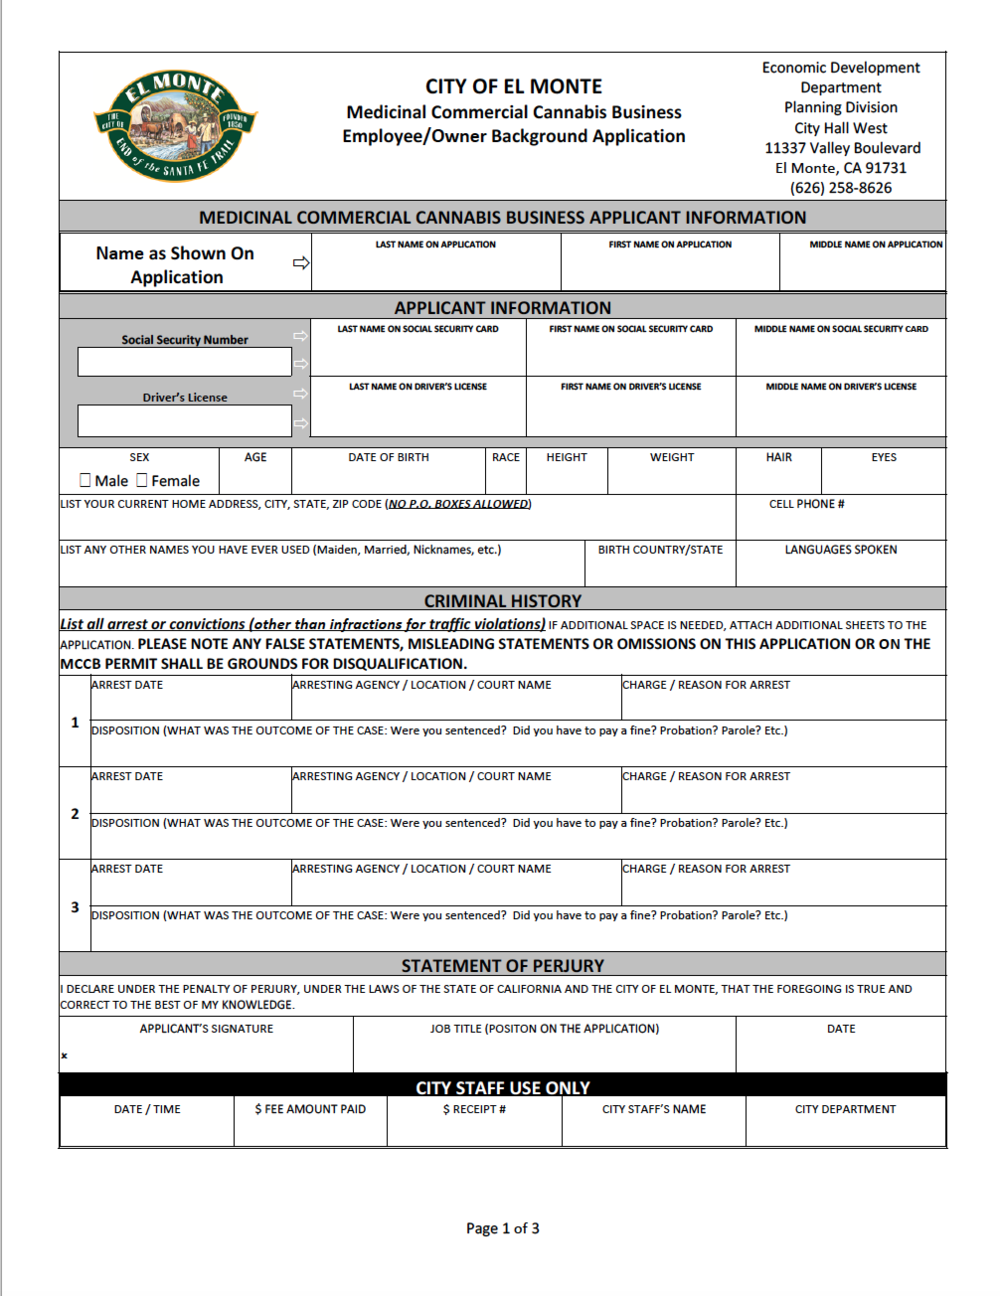 Background Application Form.png